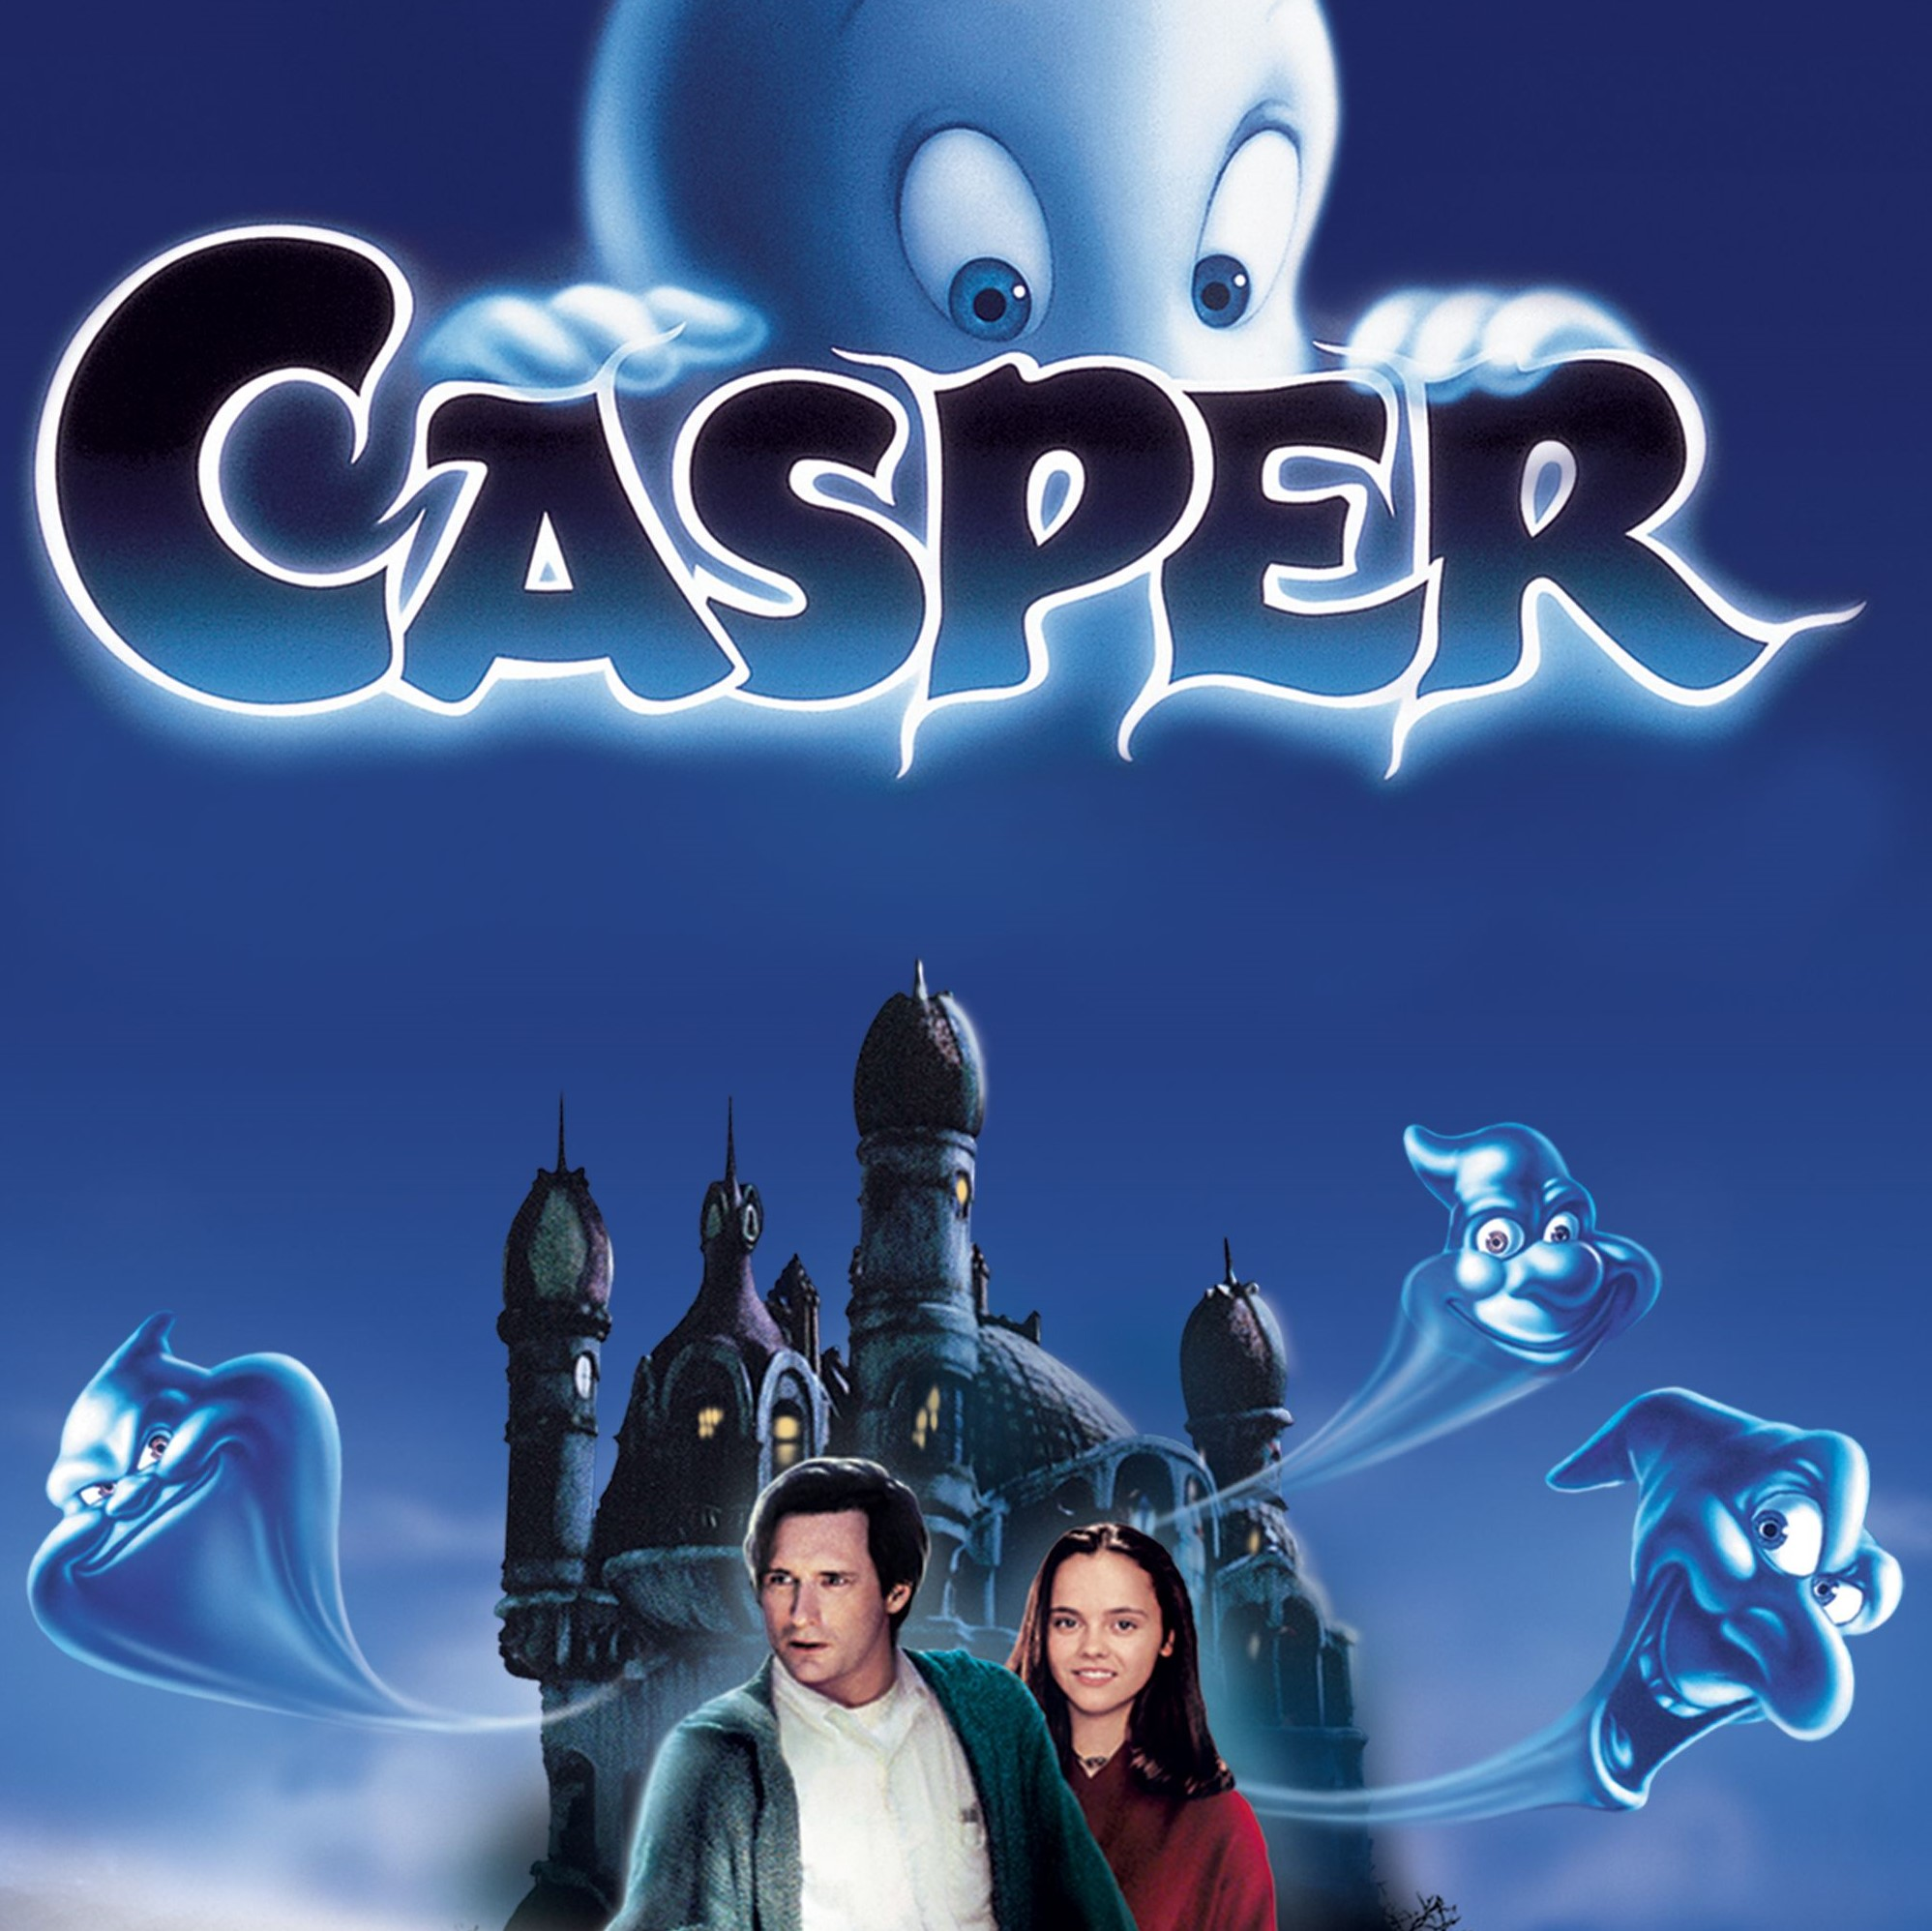 Event image for Casper at Camberely Theatre